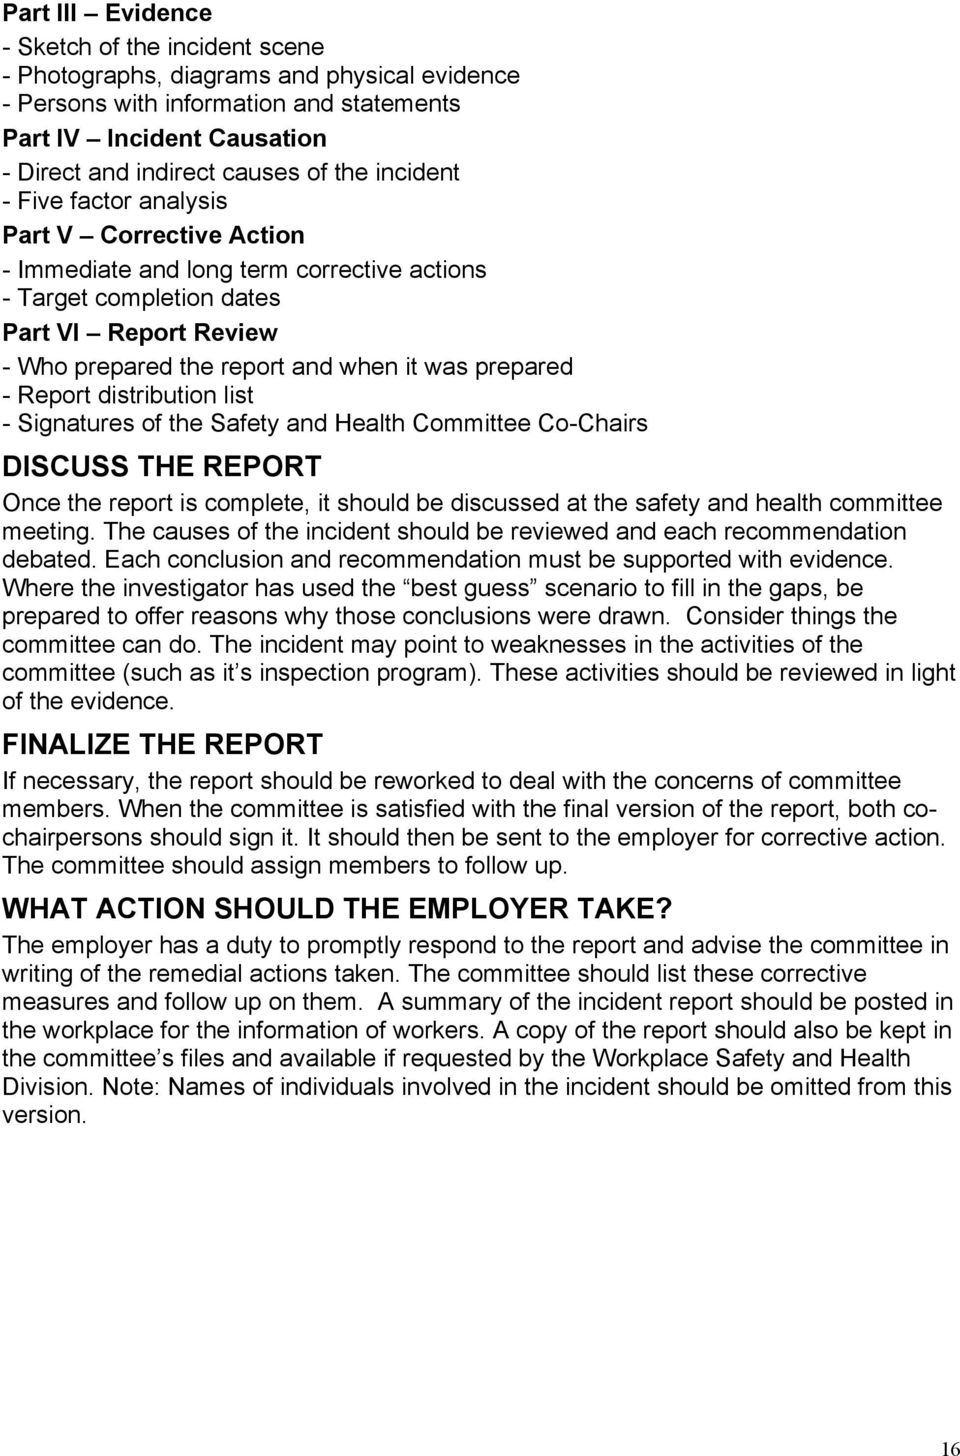 prepared - Report distribution list - Signatures of the Safety and Health Committee Co-Chairs DISCUSS THE REPORT Once the report is complete, it should be discussed at the safety and health committee